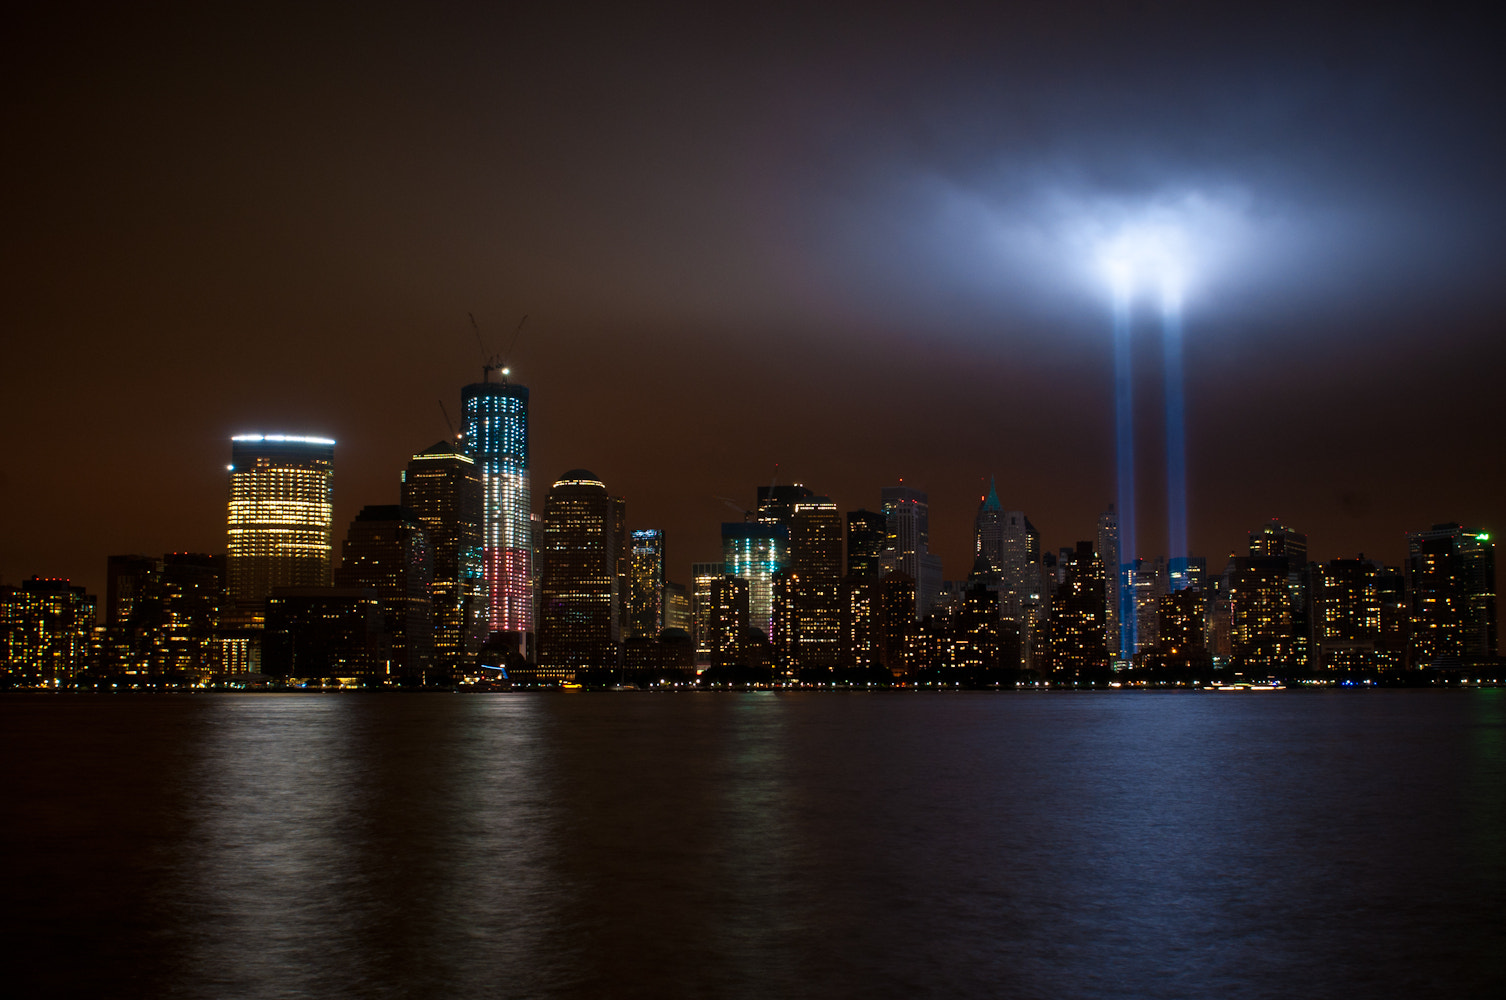 Photograph WTC Towers of Light by Arclight Images on 500px